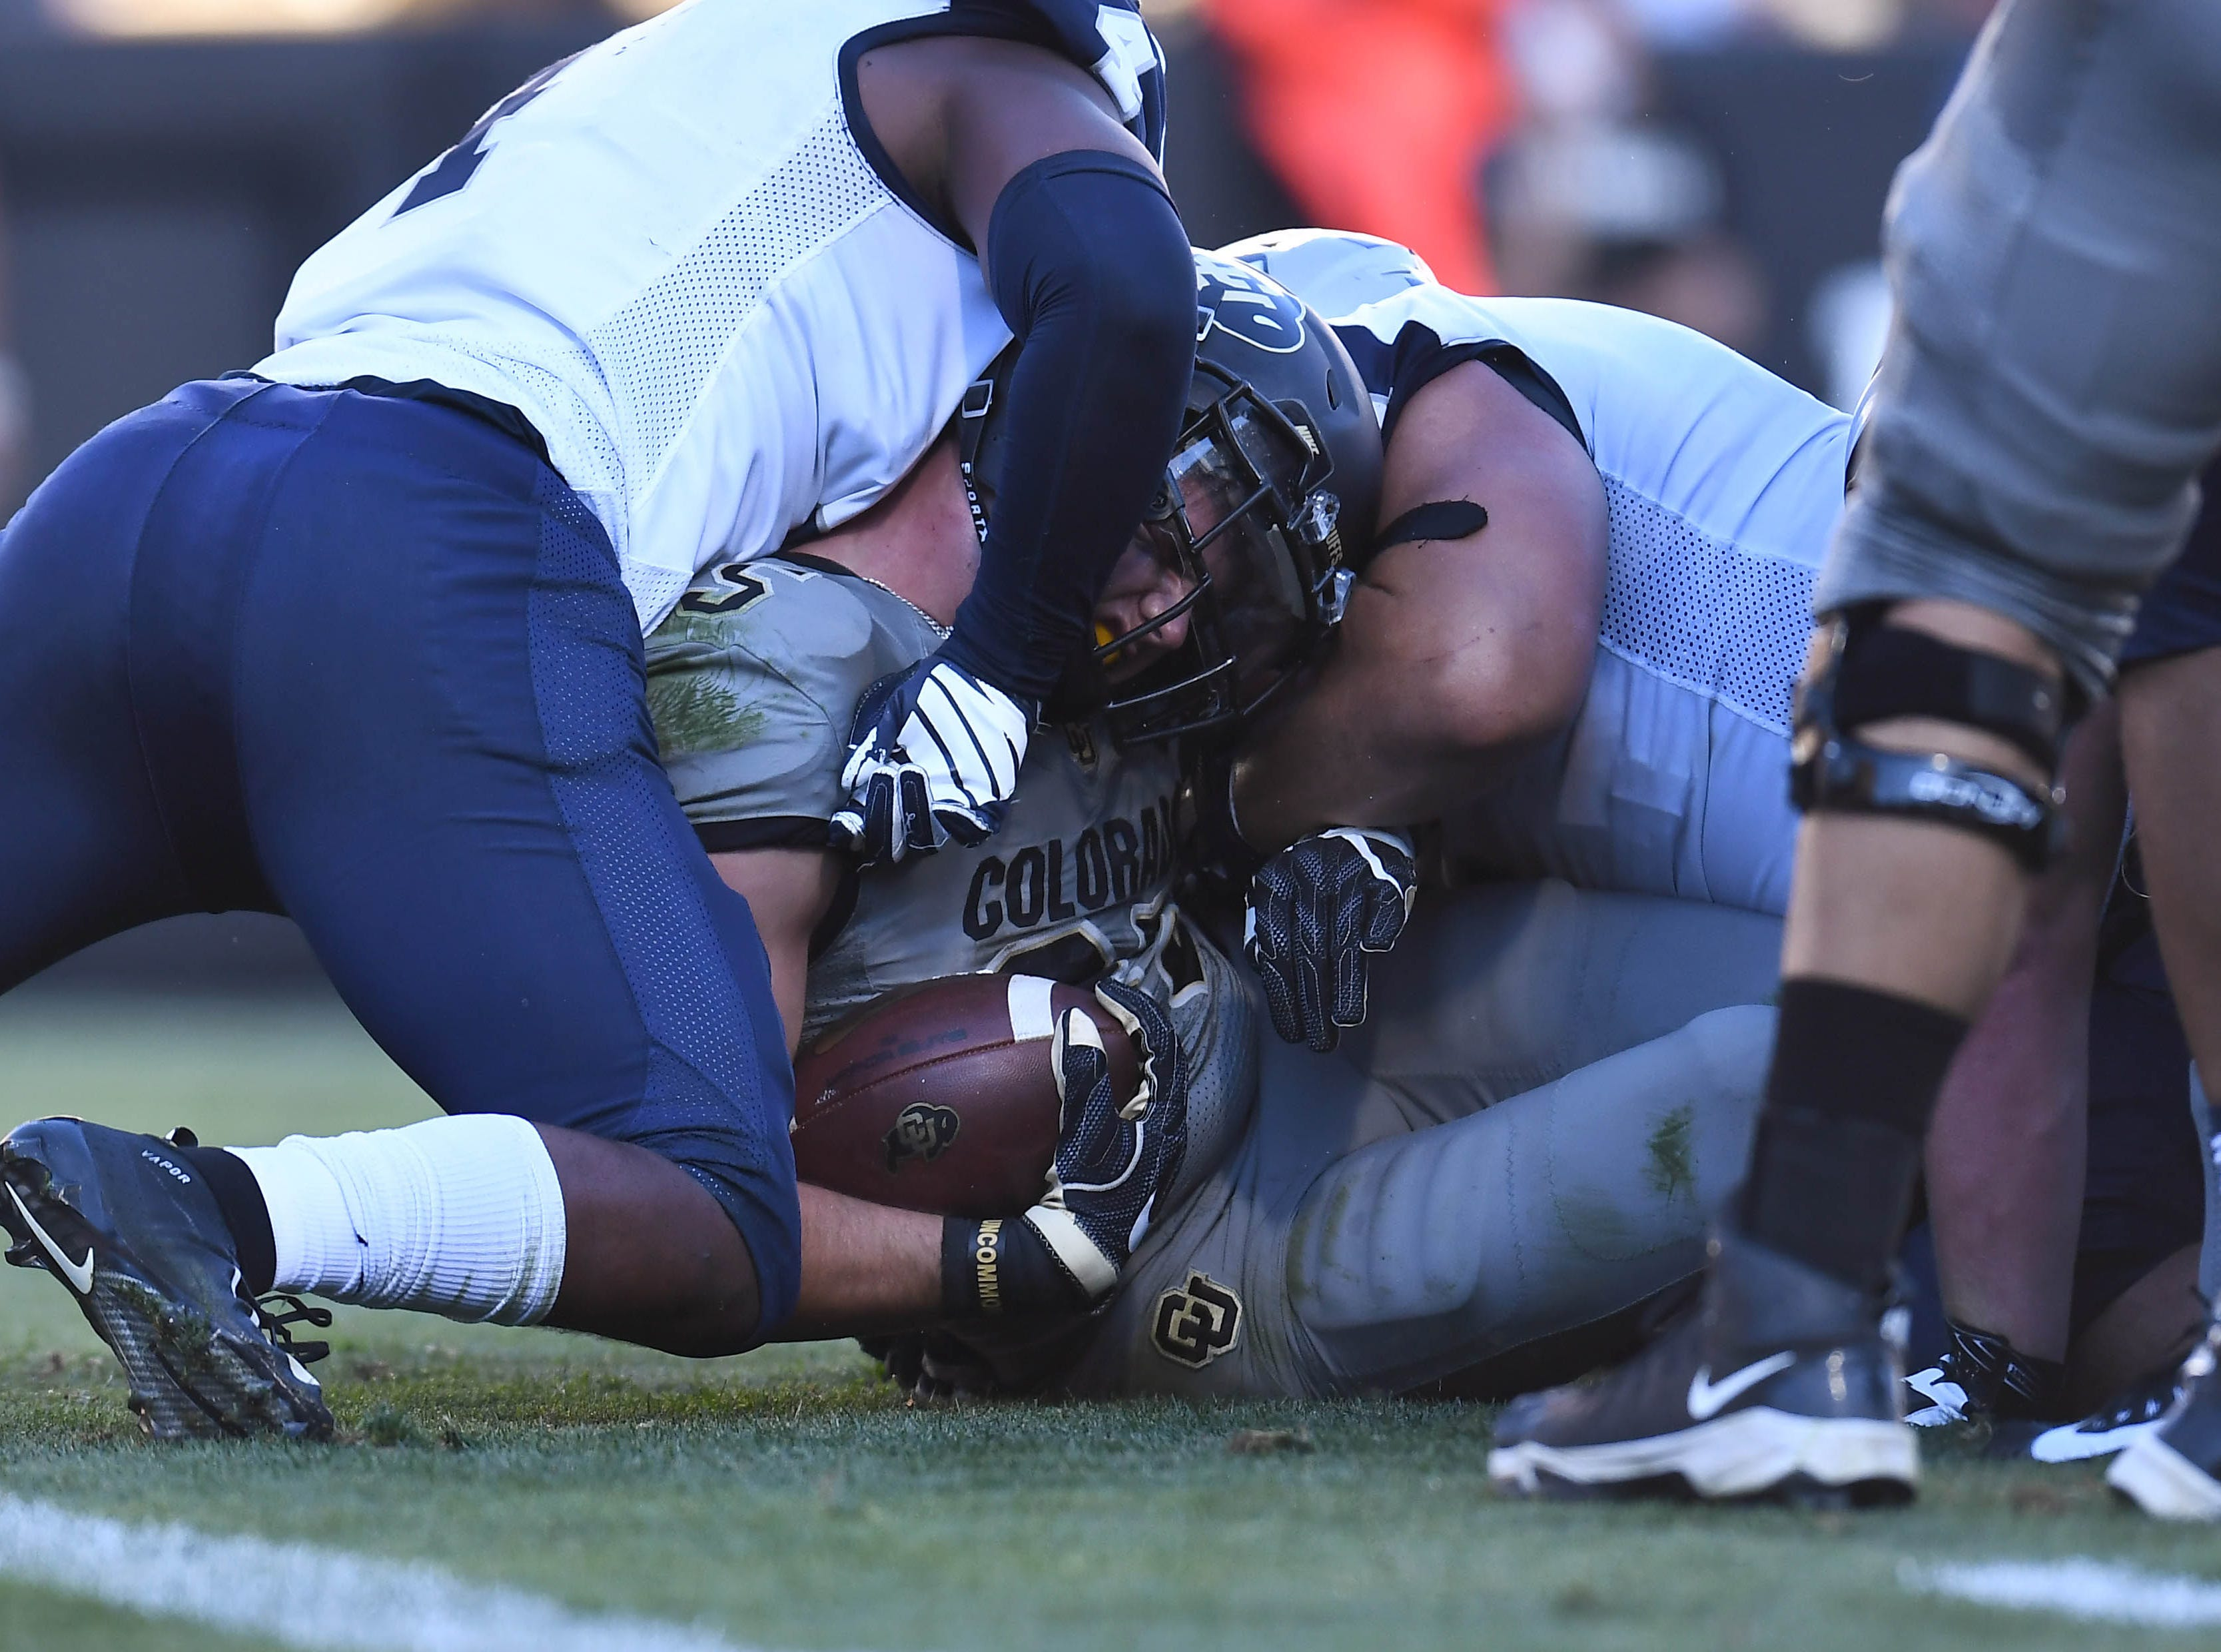 Colorado Buffaloes running back Travon McMillian (34) is tackled after a carry by New Hampshire Wildcats linebacker Quinlen Dean (4) in the second half of the game at Folsom Field.